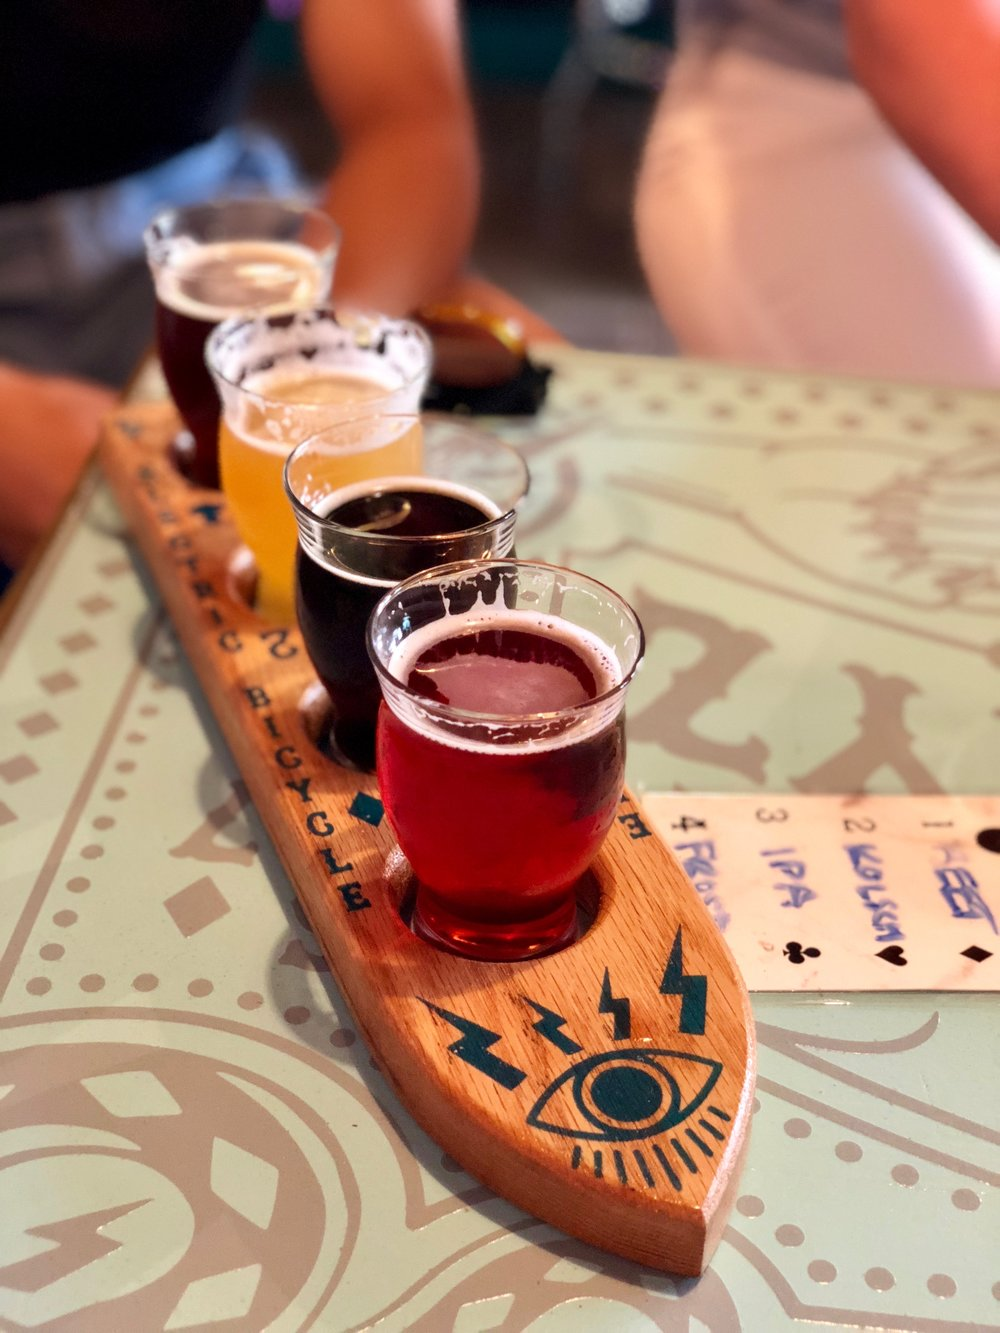 Beer vancouver tour